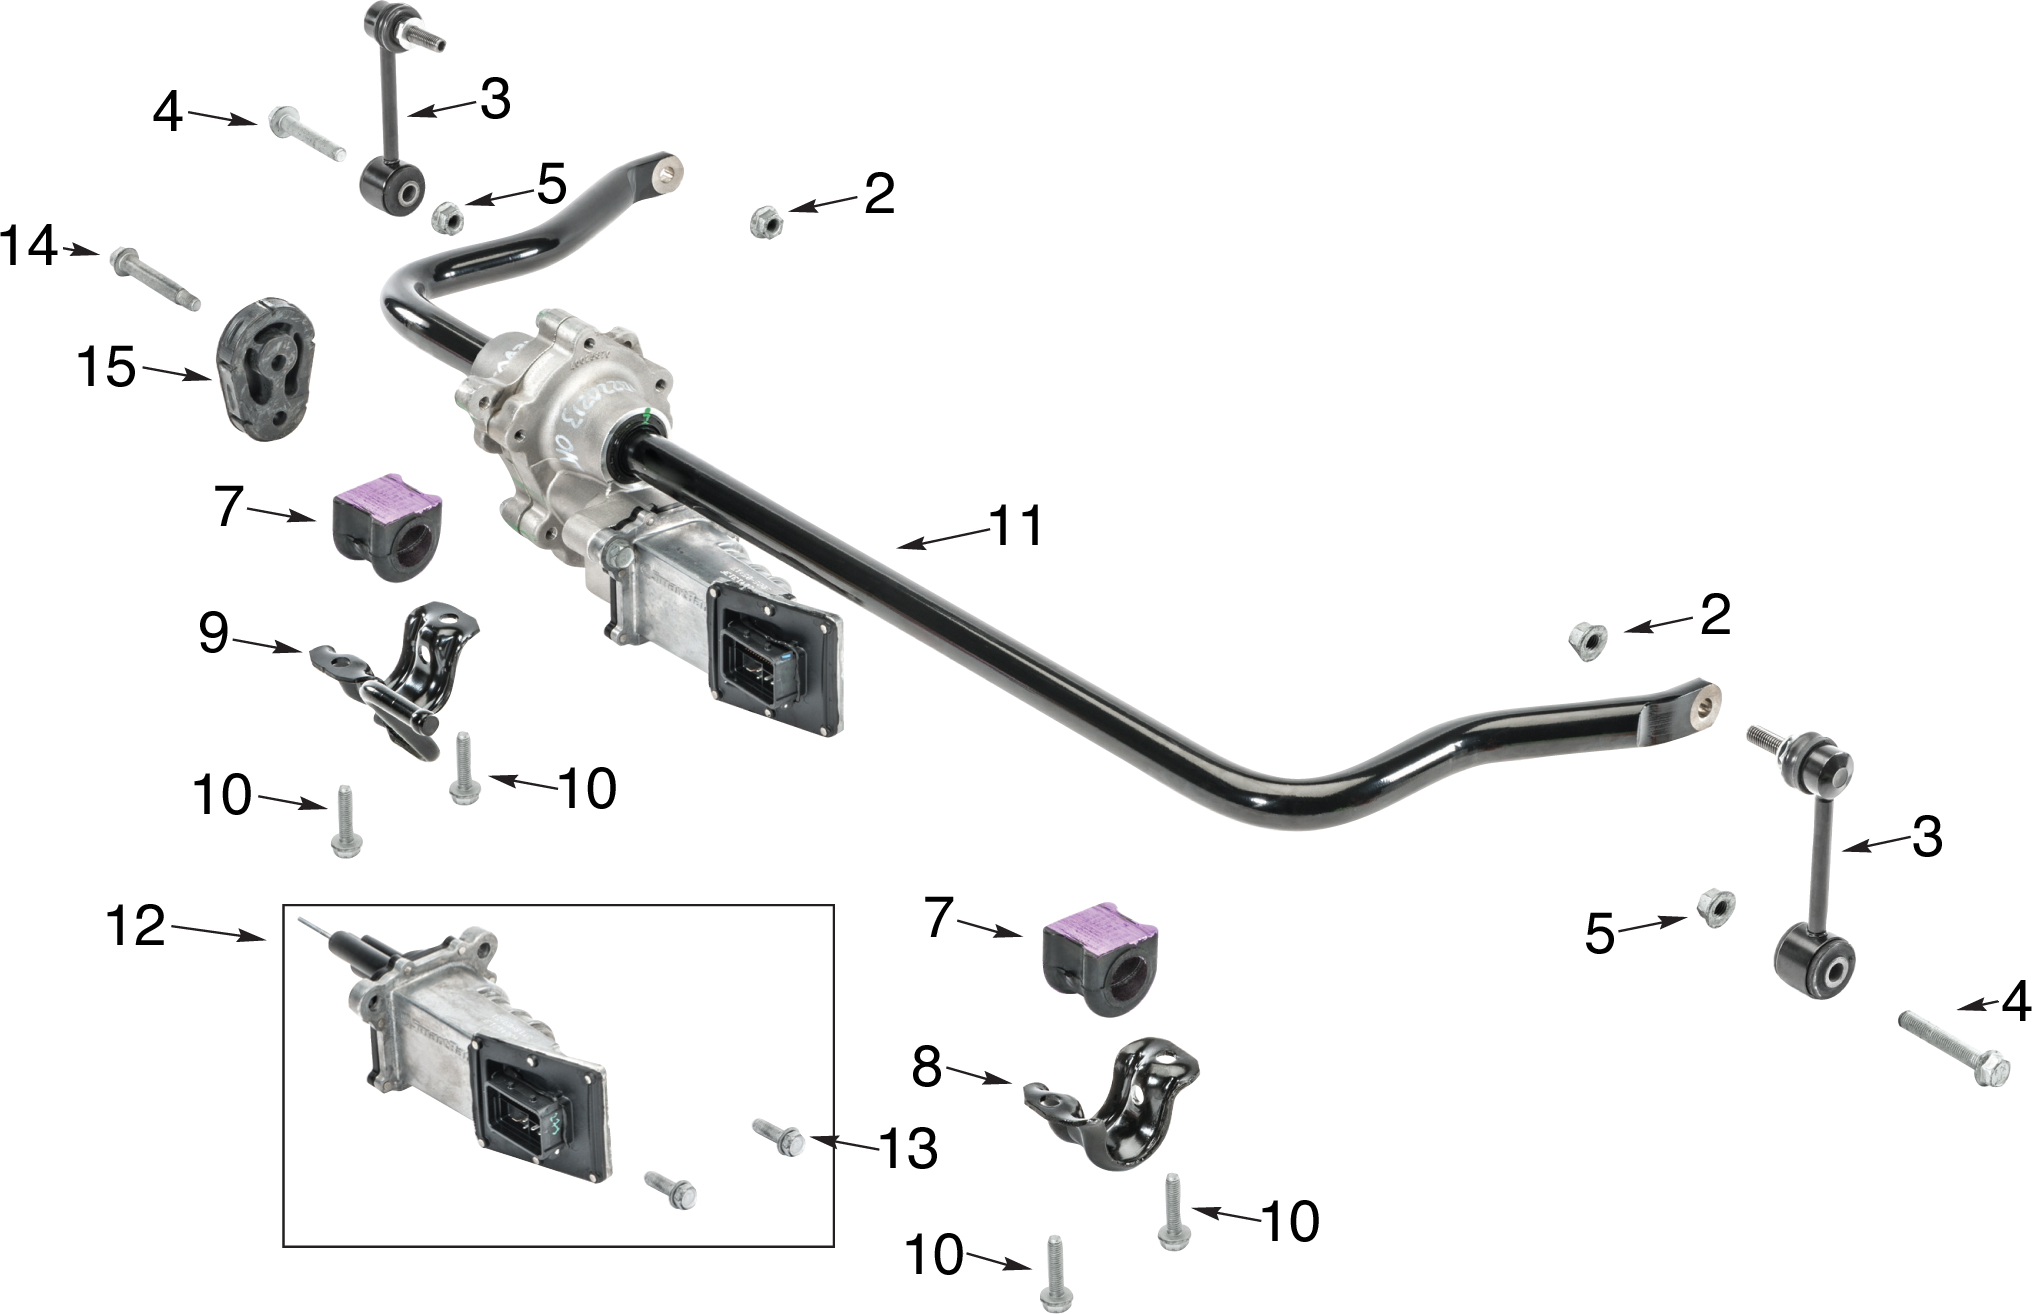 Jeep Wrangler Jk Front Stabilizer Bar Parts